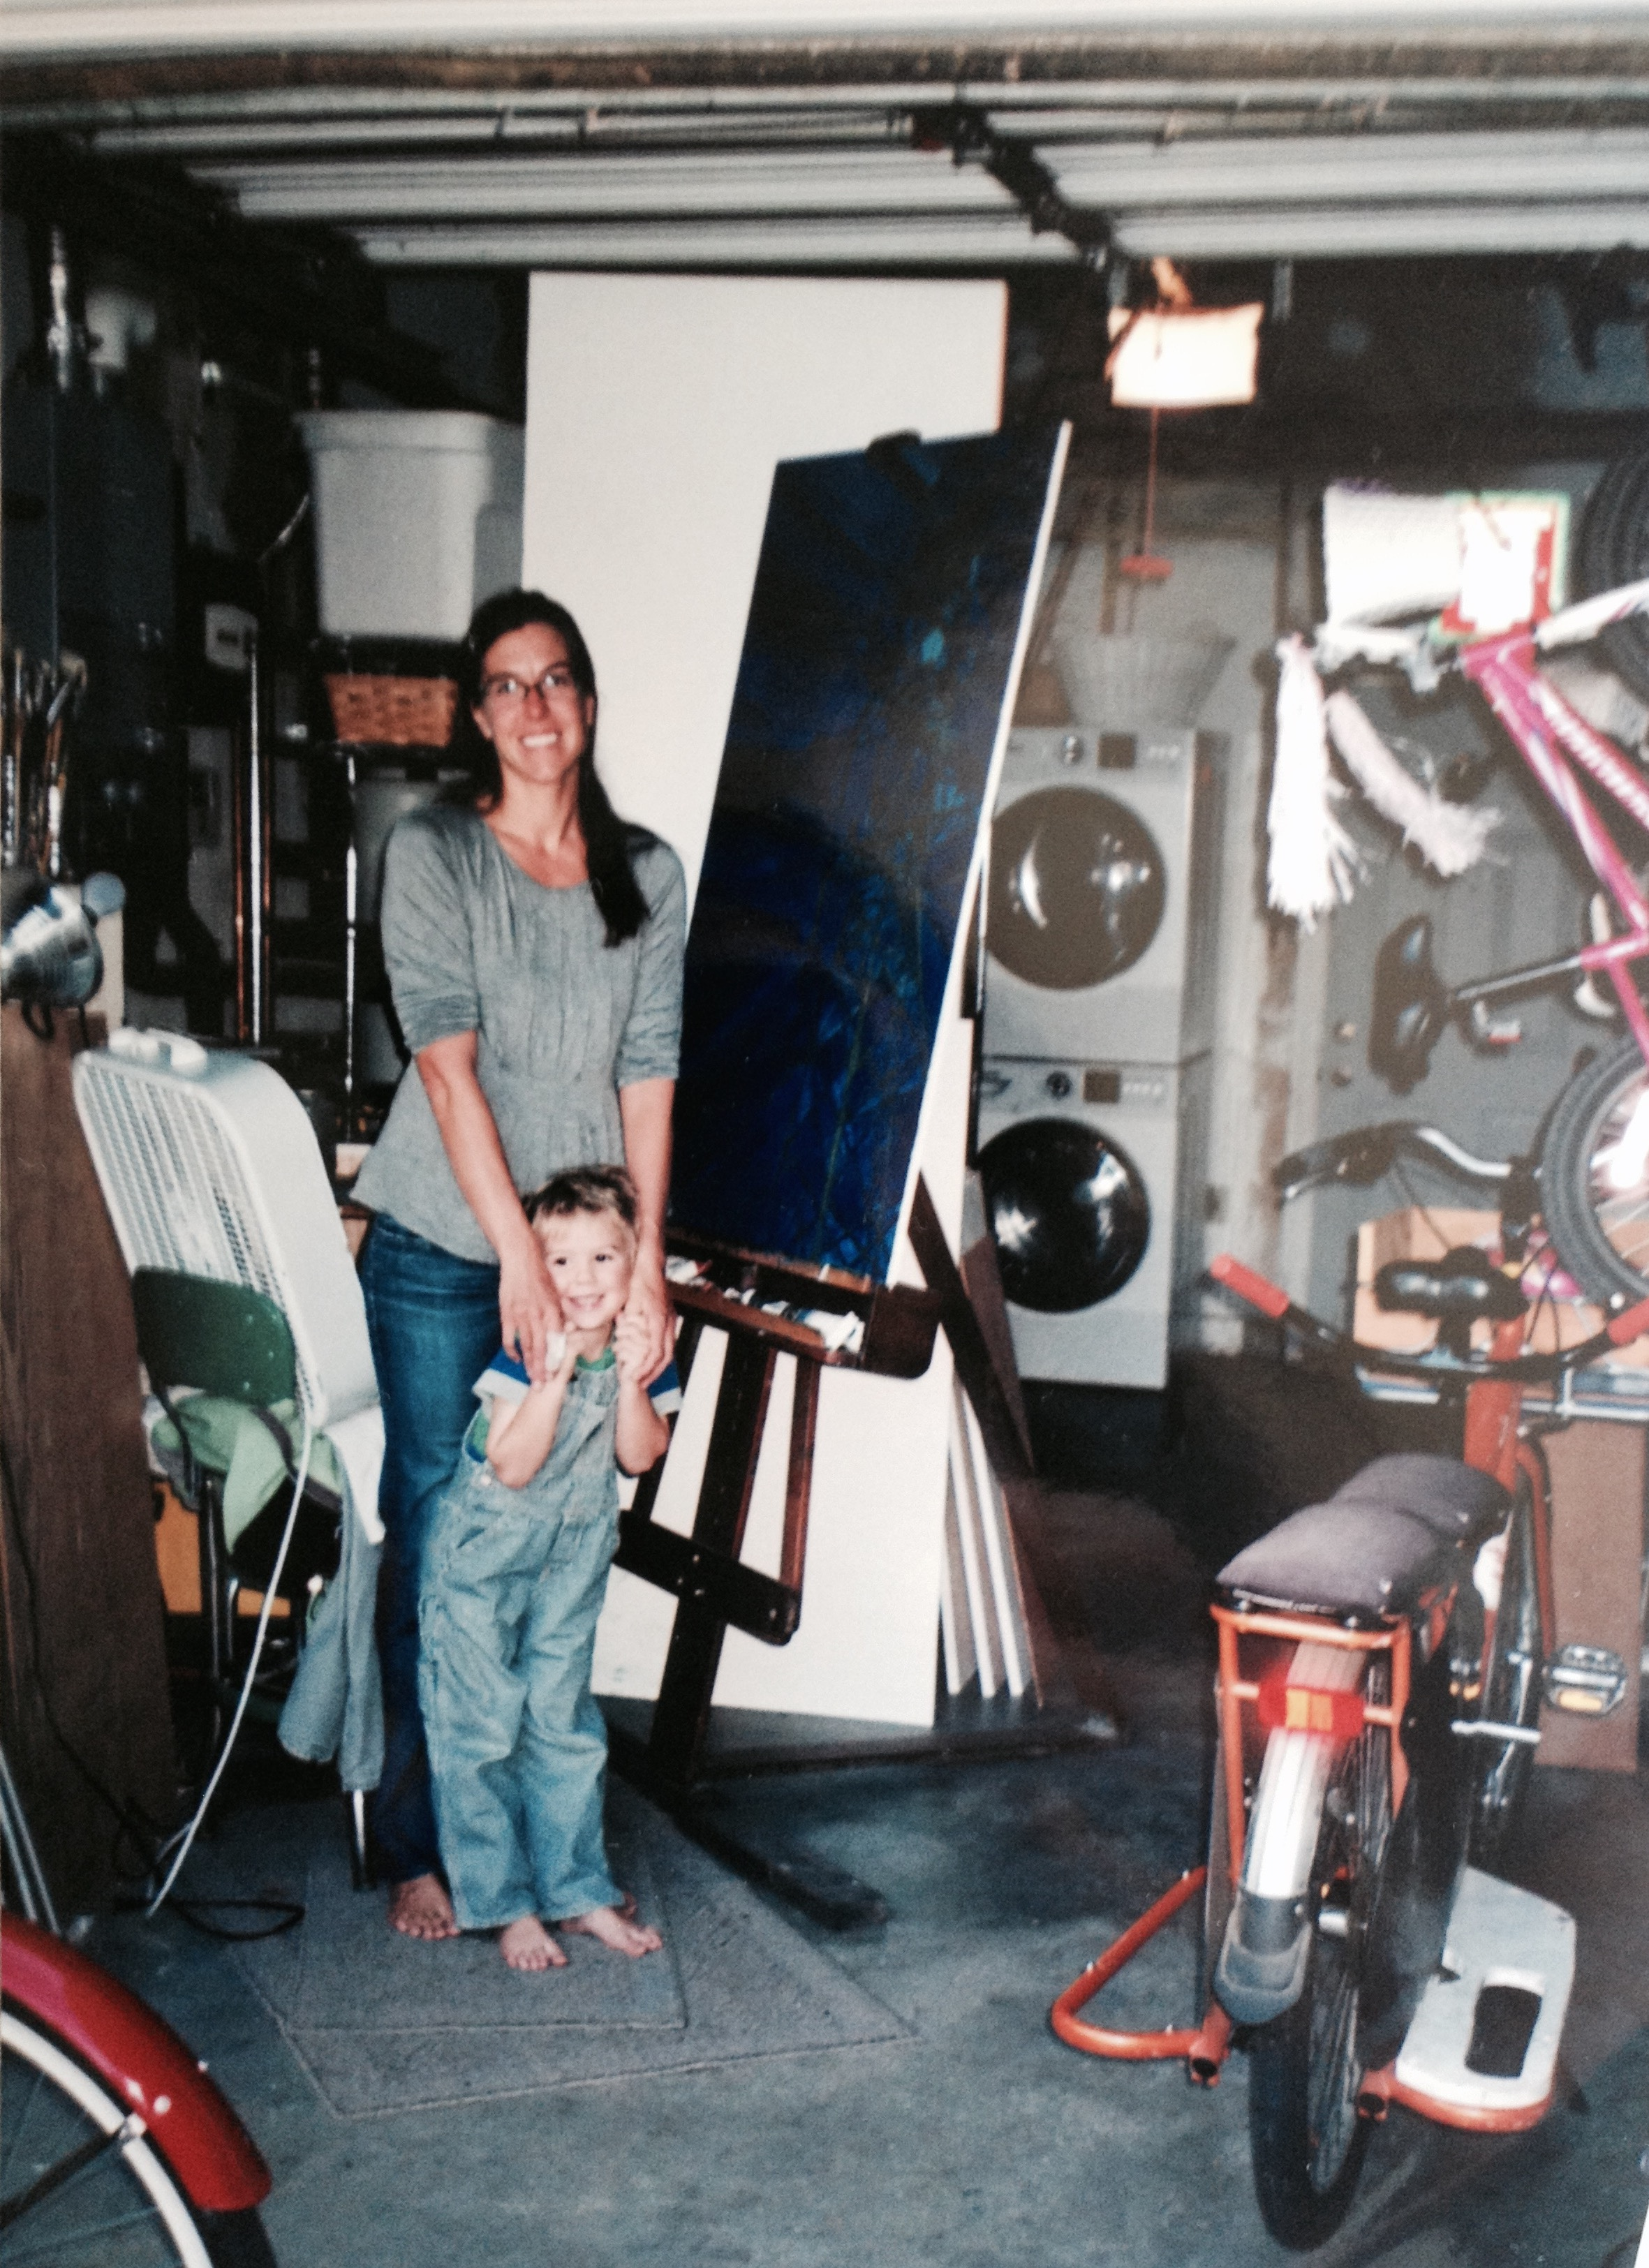 My son and I in my garage studio space, October 2014. Laundry, bikes, and many primed panels await!  (Photo credit: Judith Kays)